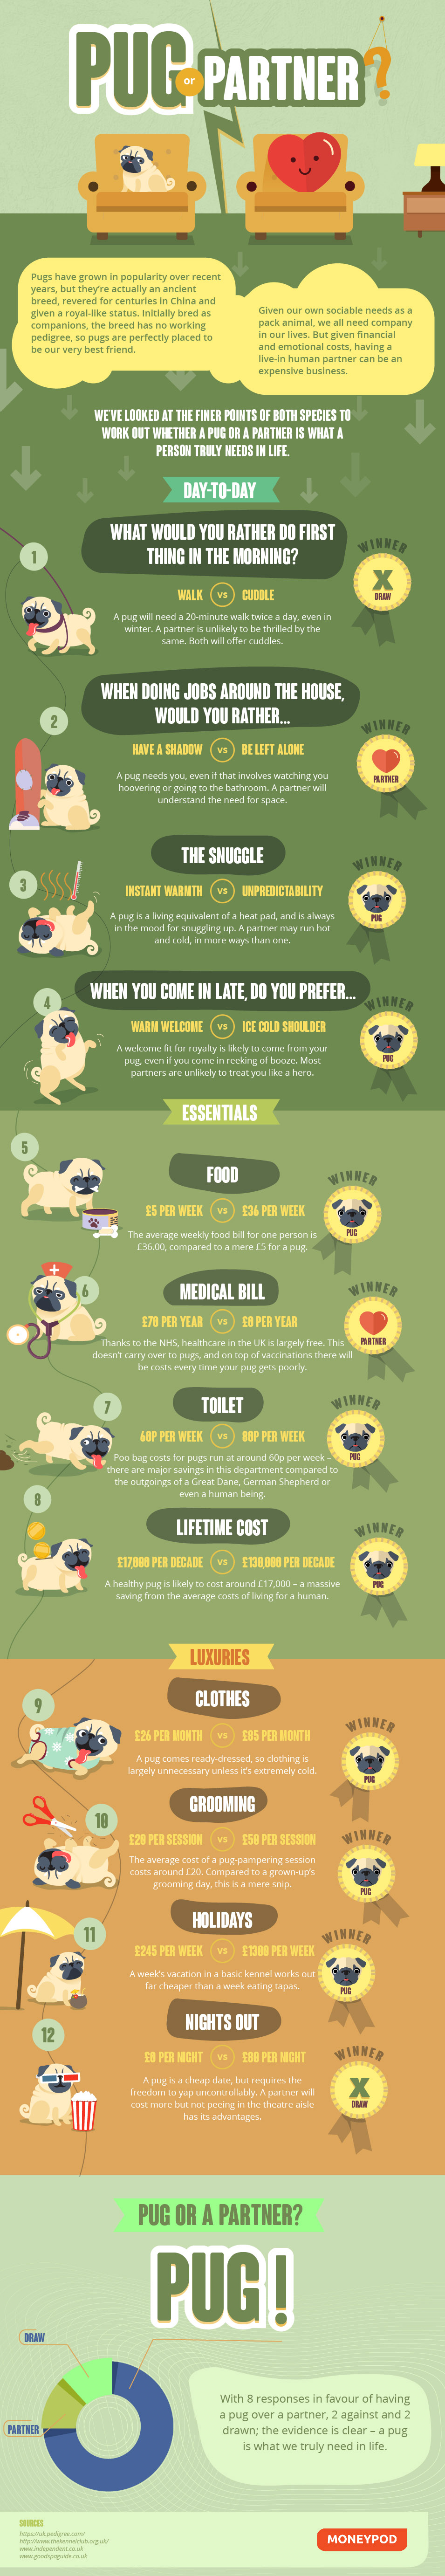 If You Had the Choice, Who Would It Be: Pug or Partner? - Infographic